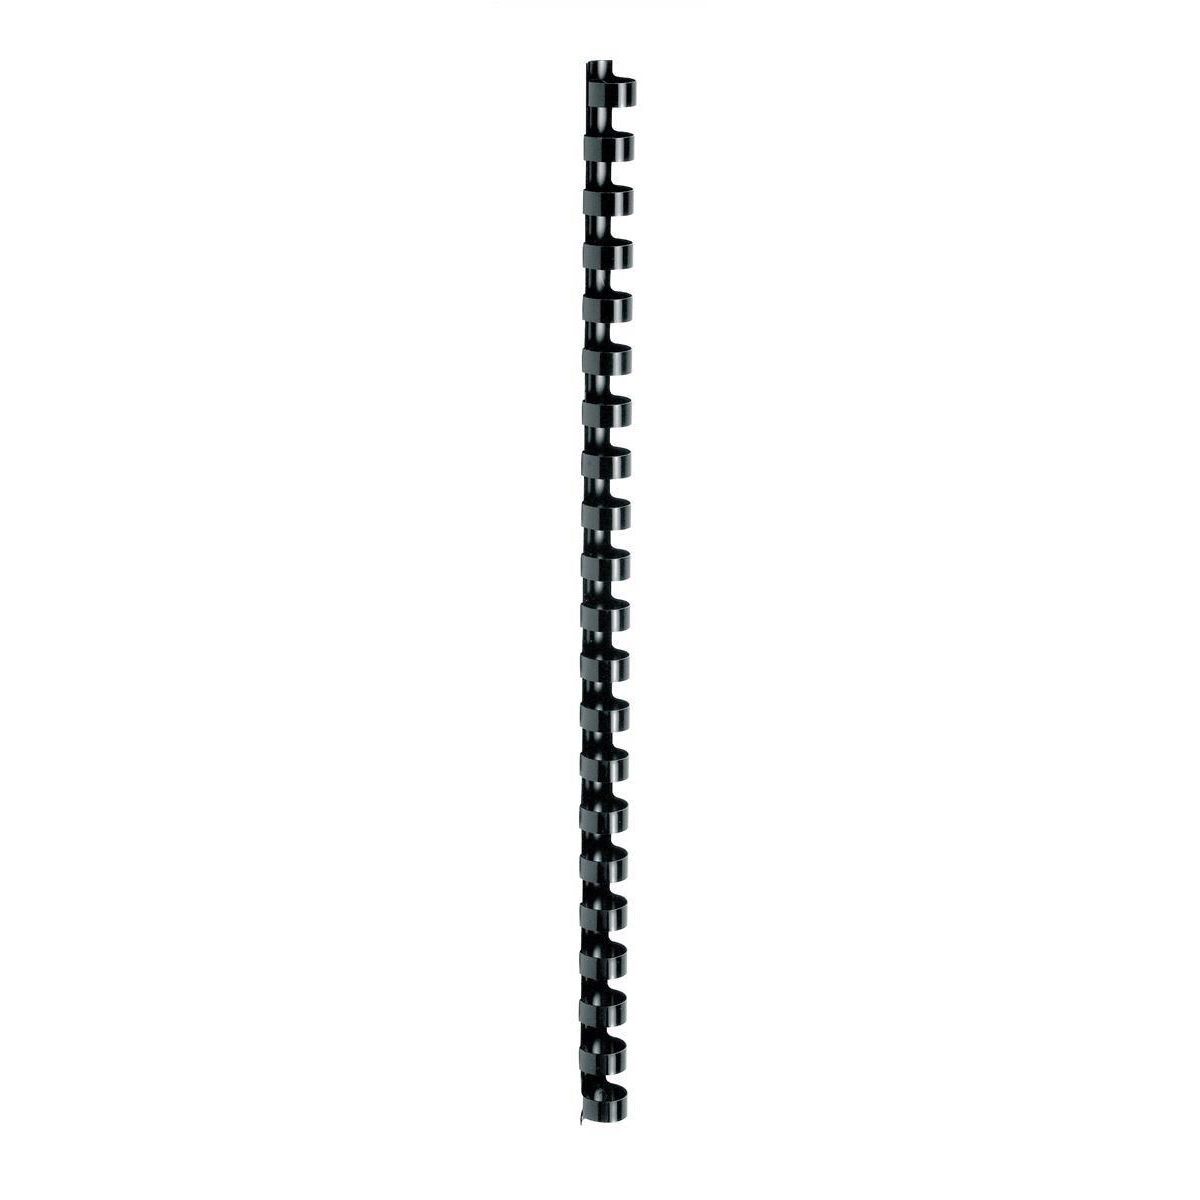 Binding Combs 5 Star Office Binding Combs Plastic 21 Ring 95 Sheets A4 12mm Black Pack 100